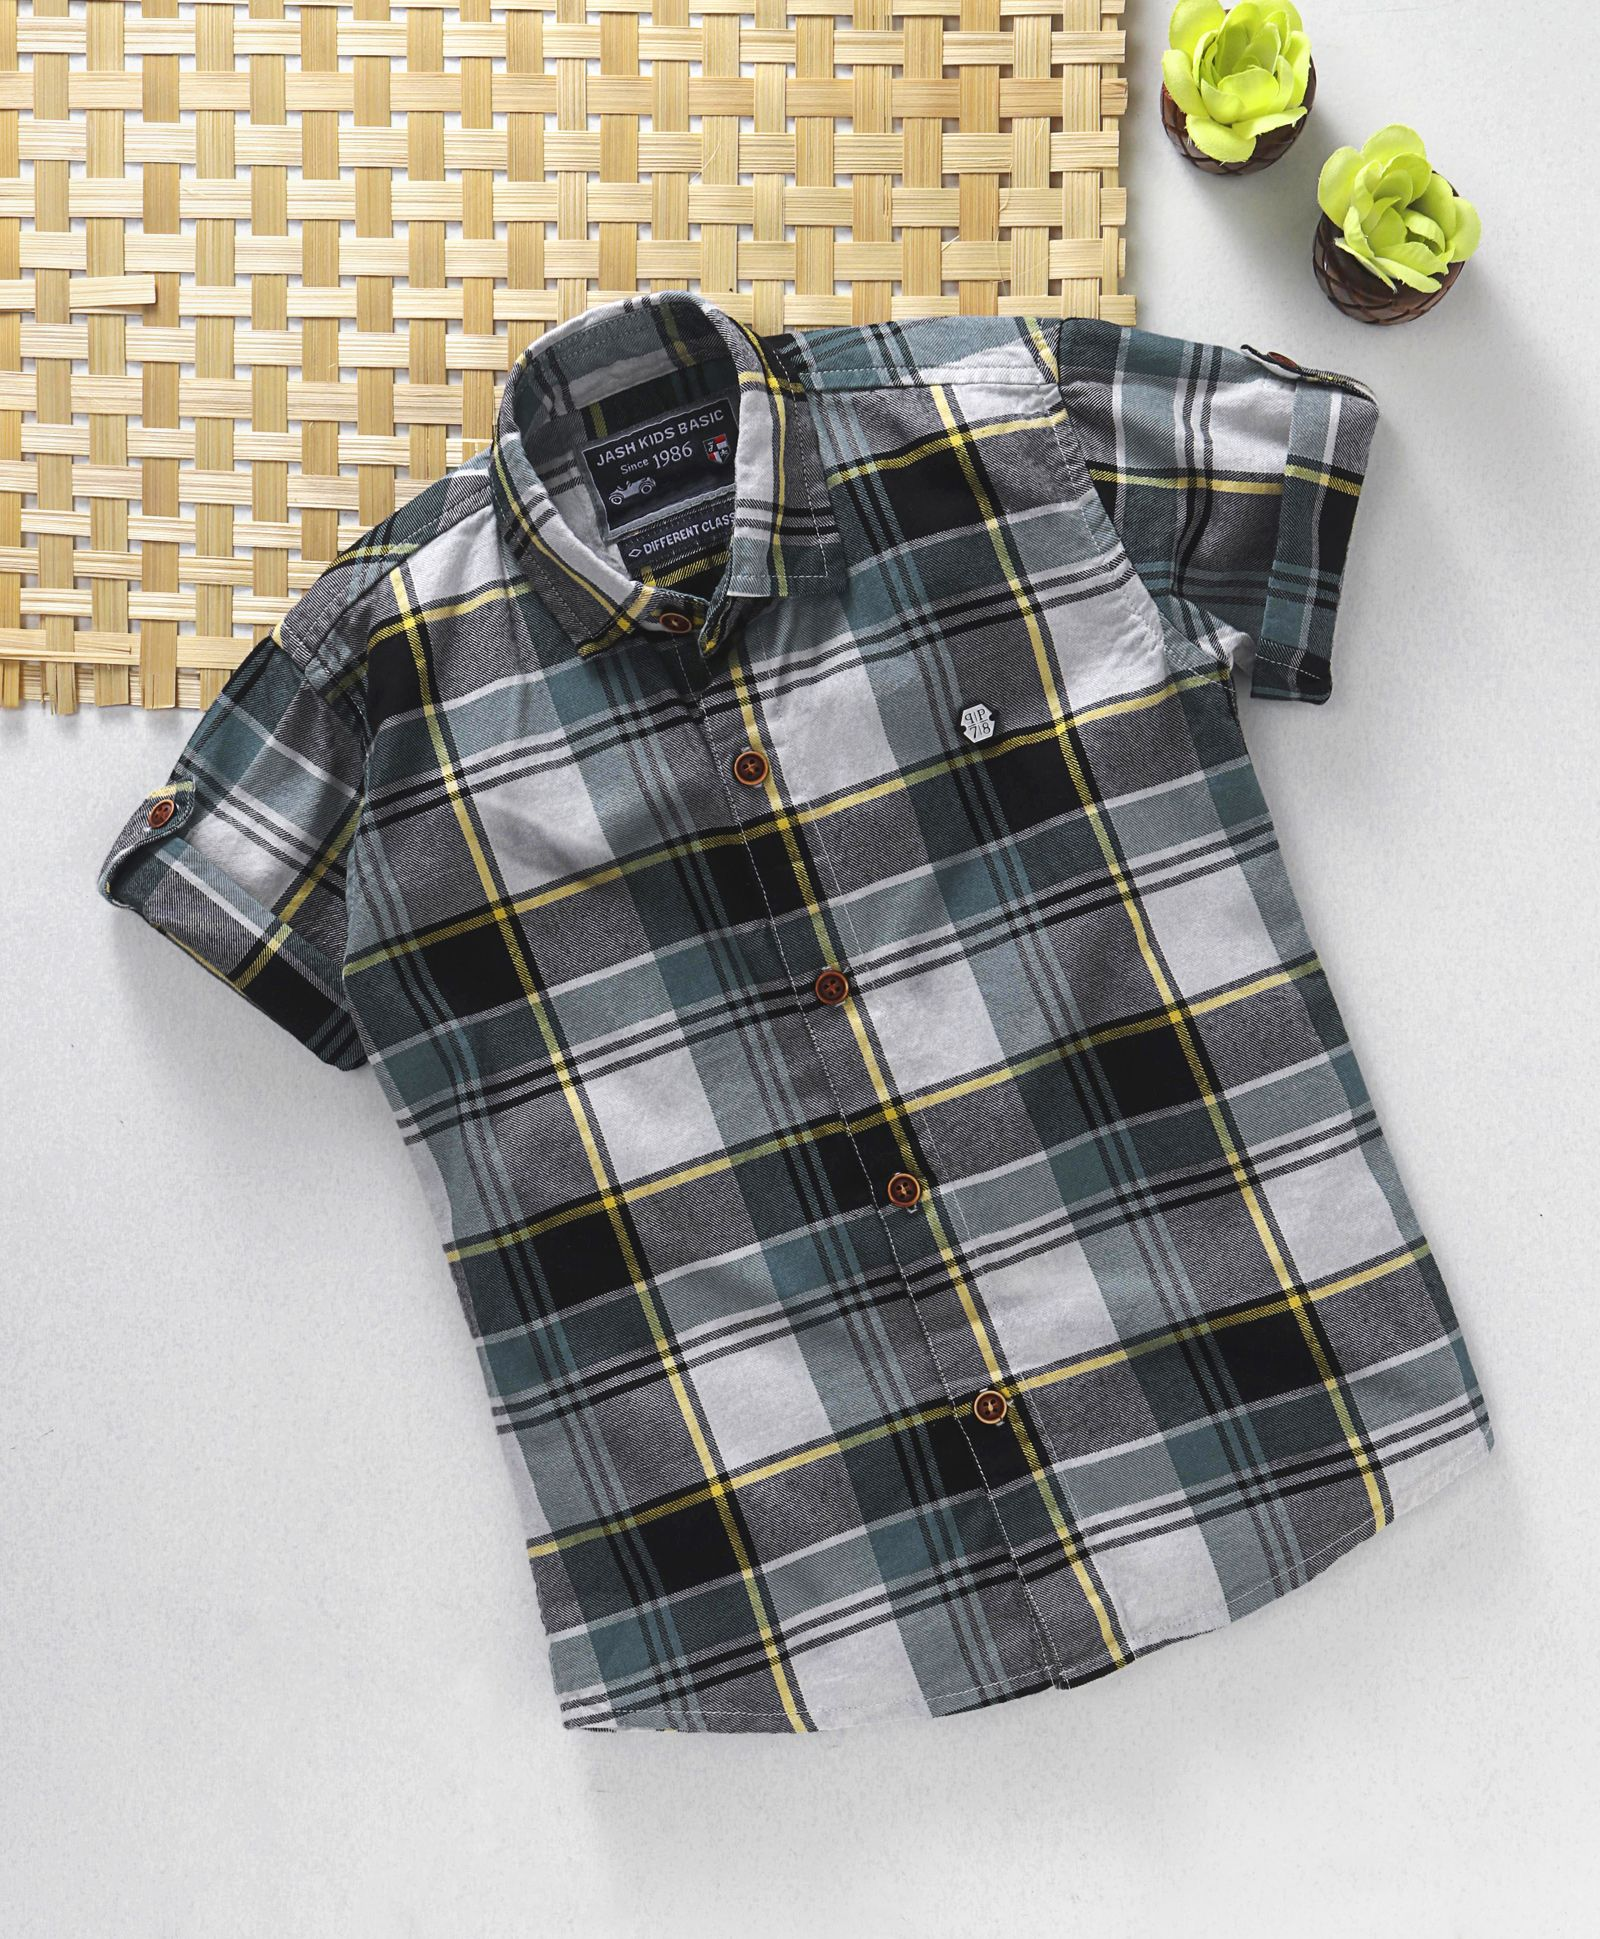 03e20c4850e31 Buy Jash Kids Half Sleeves Check Shirt Green Black for Boys (2-3 ...